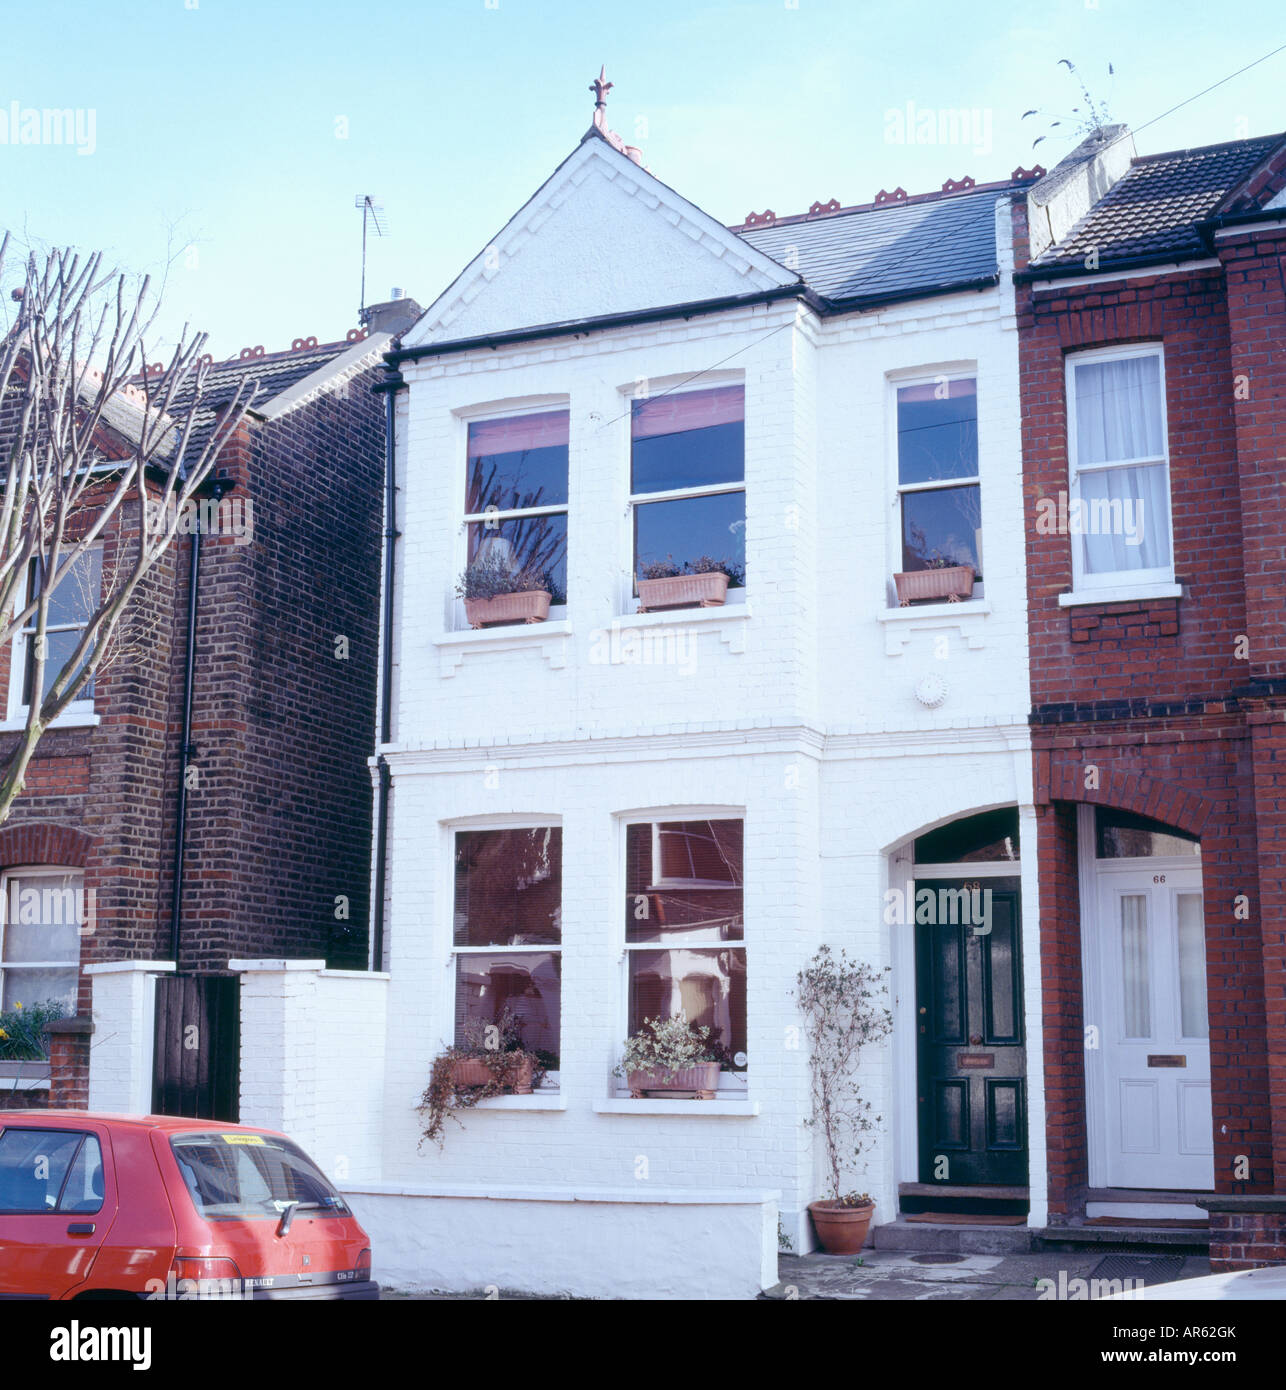 White Semi Detached Edwardian Townhouse Stock Photo 15950562